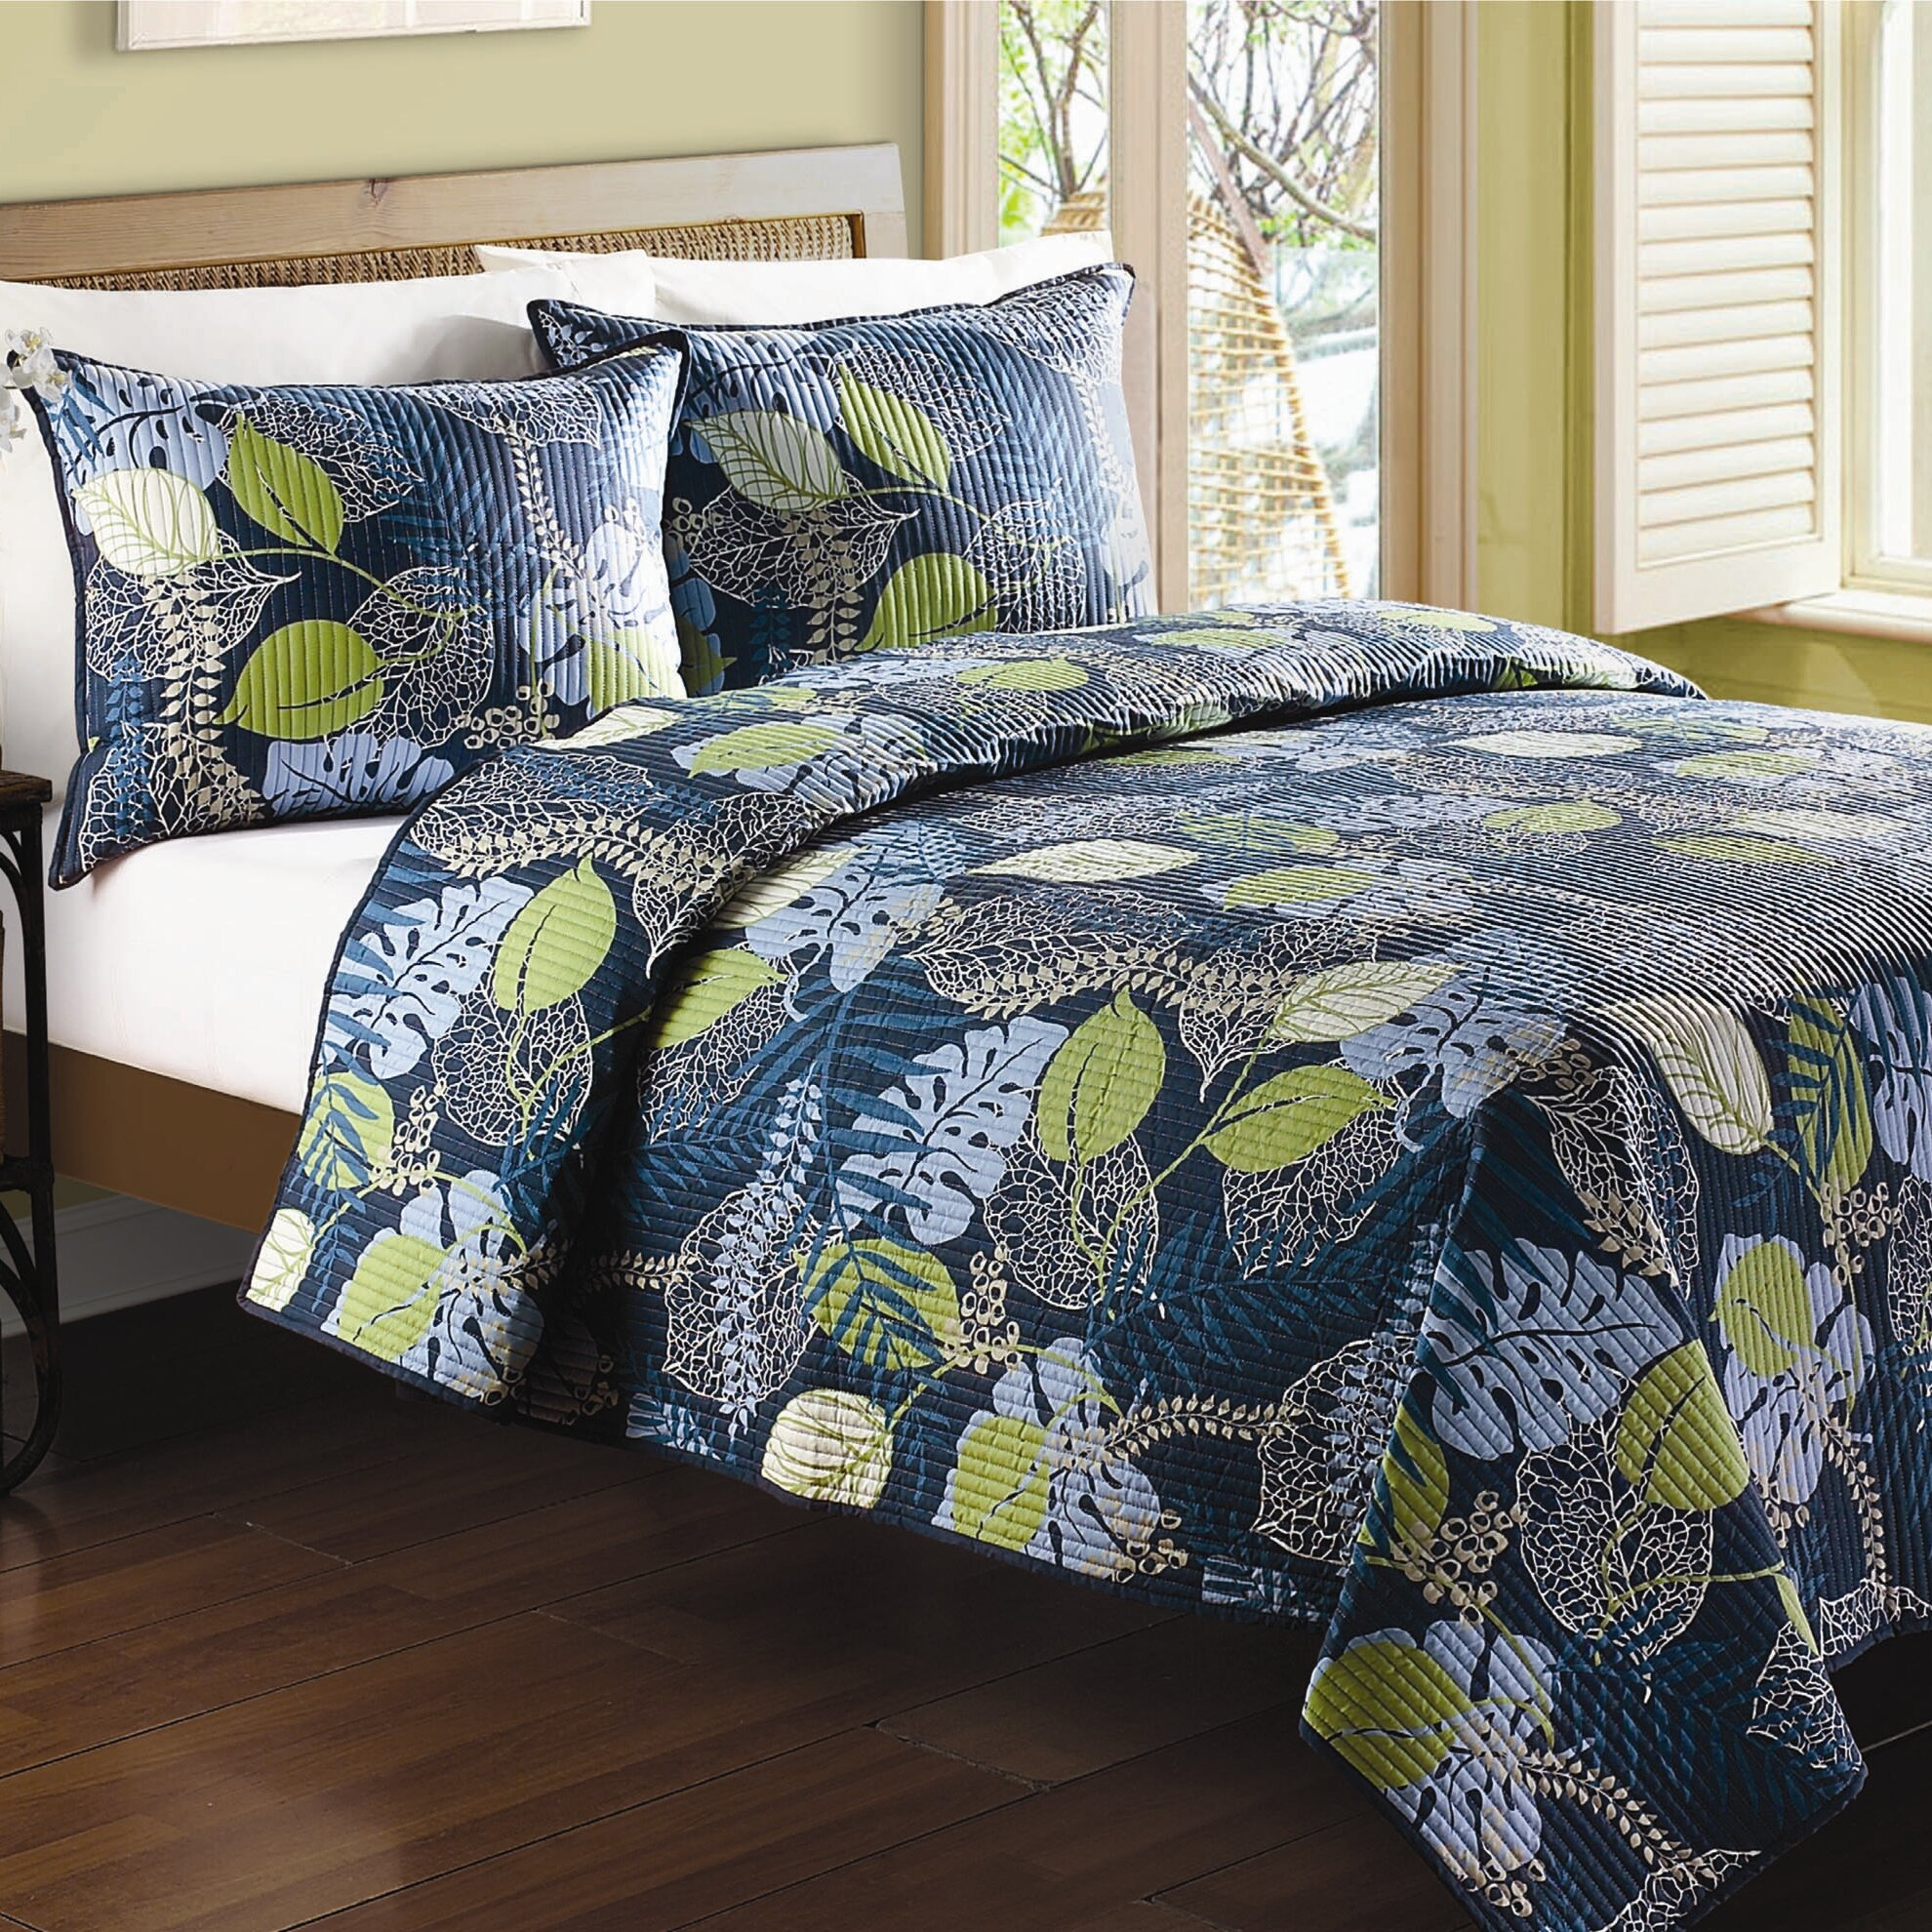 JampJ Bedding Tropical Leaves Quilt amp Reviews Wayfair : JandJ Bedding Tropical Leaves Quilt from www.wayfair.com size 1980 x 1980 jpeg 1332kB